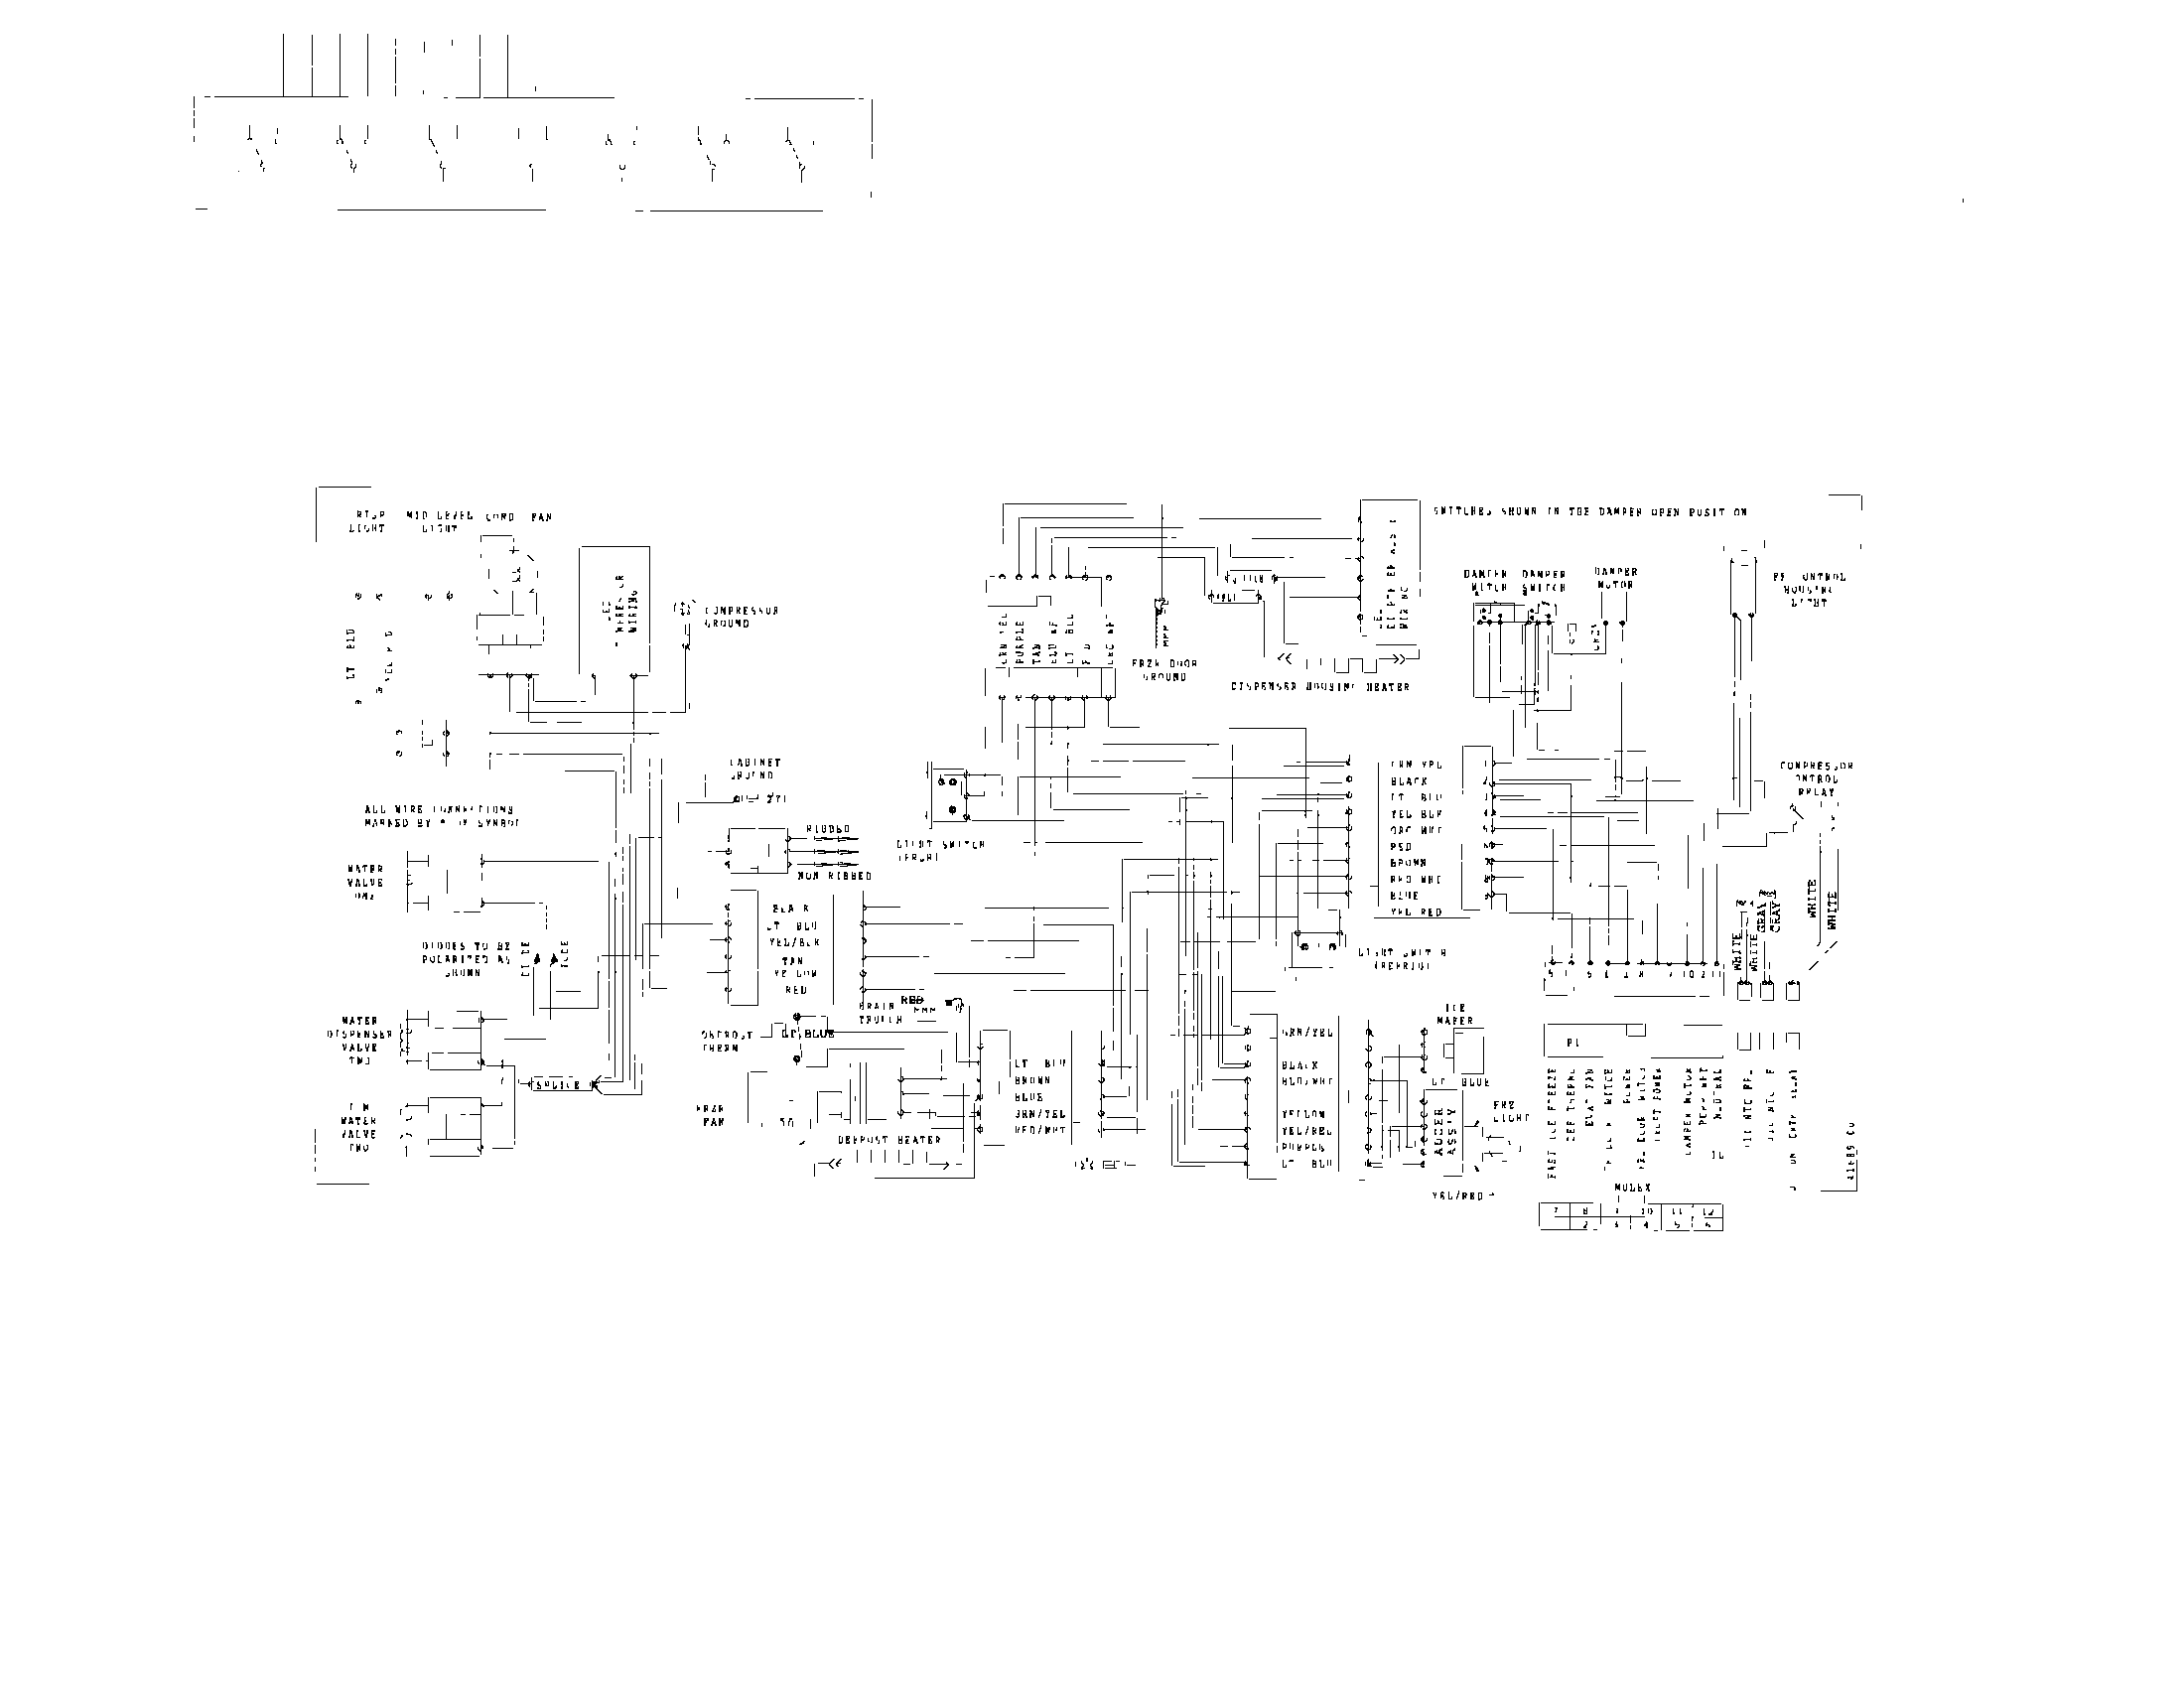 WIRING DIAGRAM Diagram & Parts List for Model 25356763600